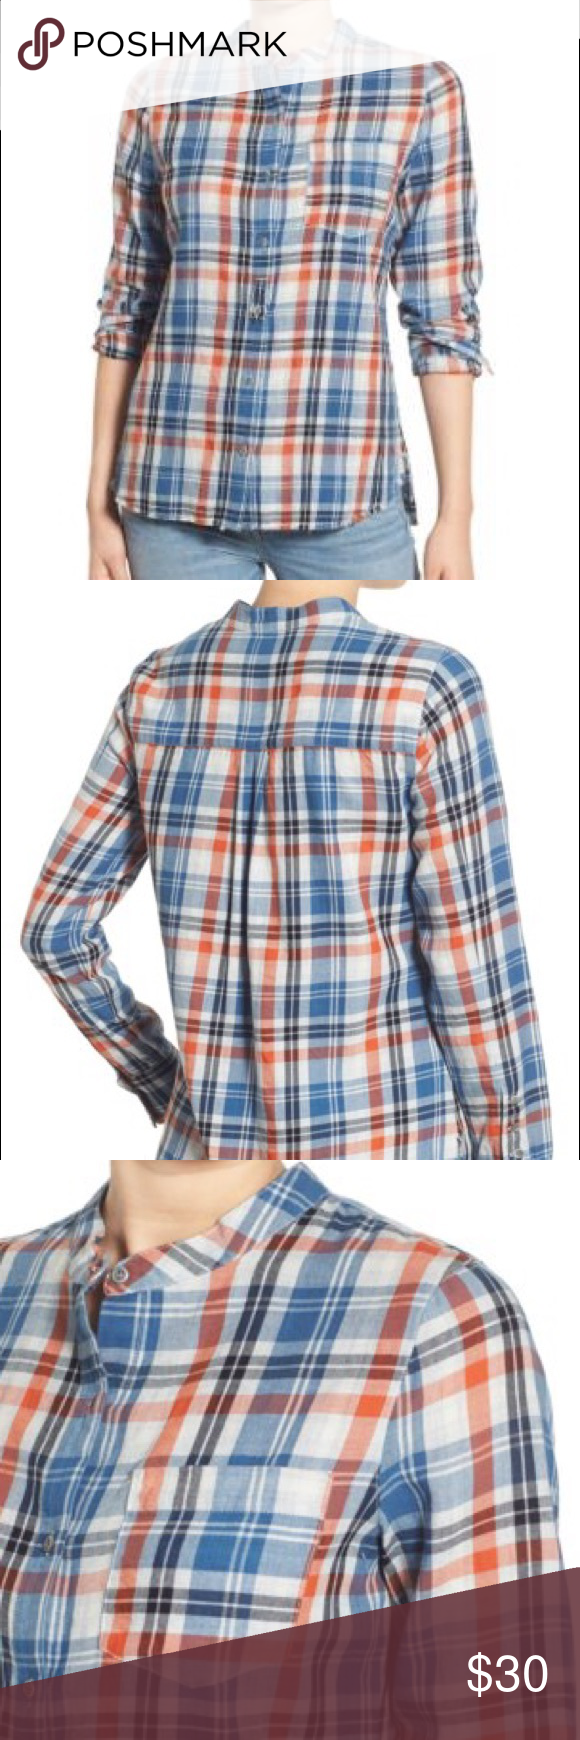 """Plaid Band Collar Cotton Shirt A band collar and contrast patch at the placket add unexpected detail to a plaid cotton blouse with long, scrunchable sleeves. - 28"""" length (size Medium) - Front button closure - Chest patch pocket - Long sleeves with single-button cuffs - 100% cotton - Machine wash cold, tumble dry low - By Treasure&Bond; imported Treasure & Bond Tops Button Down Shirts"""